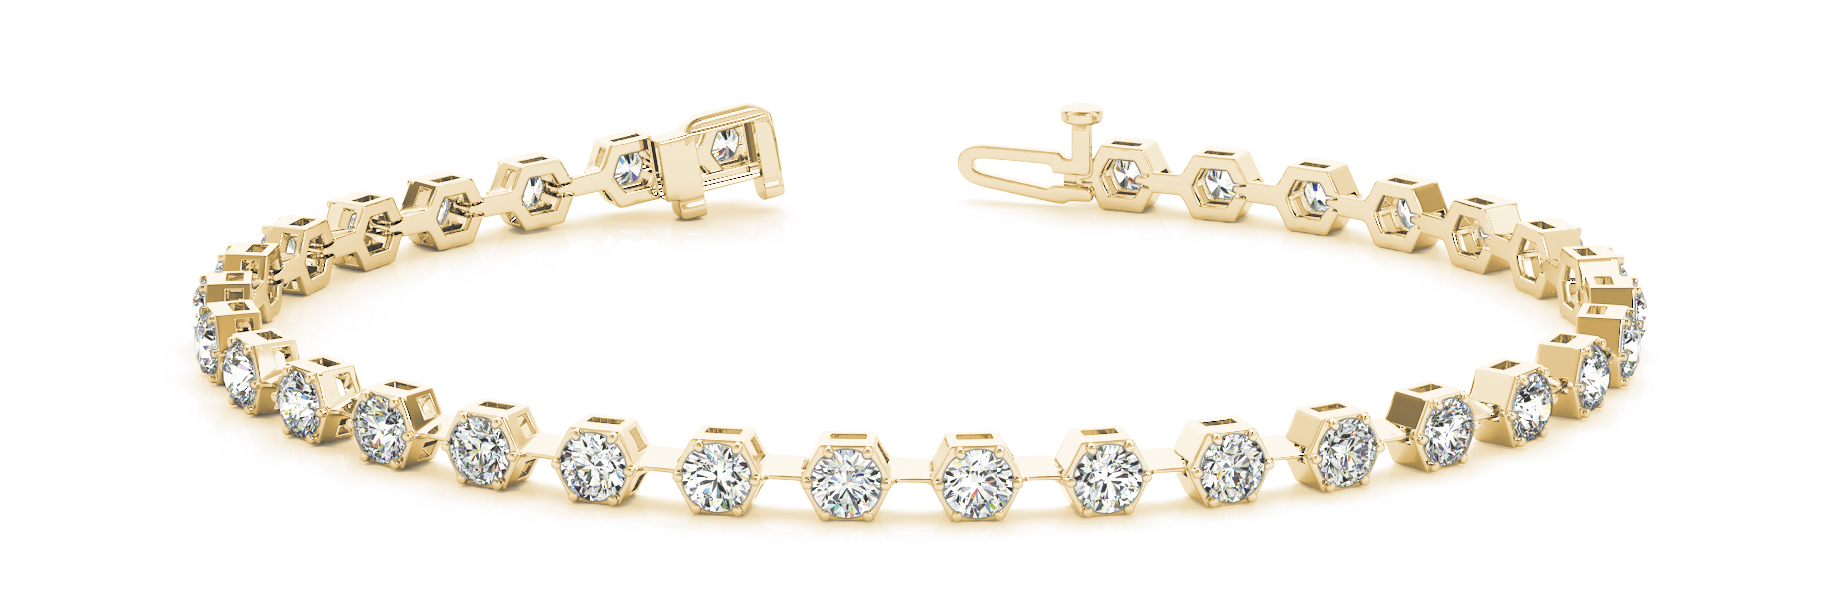 1.6 Carat Round Diamond Hexagon Yellow Gold Bracelet